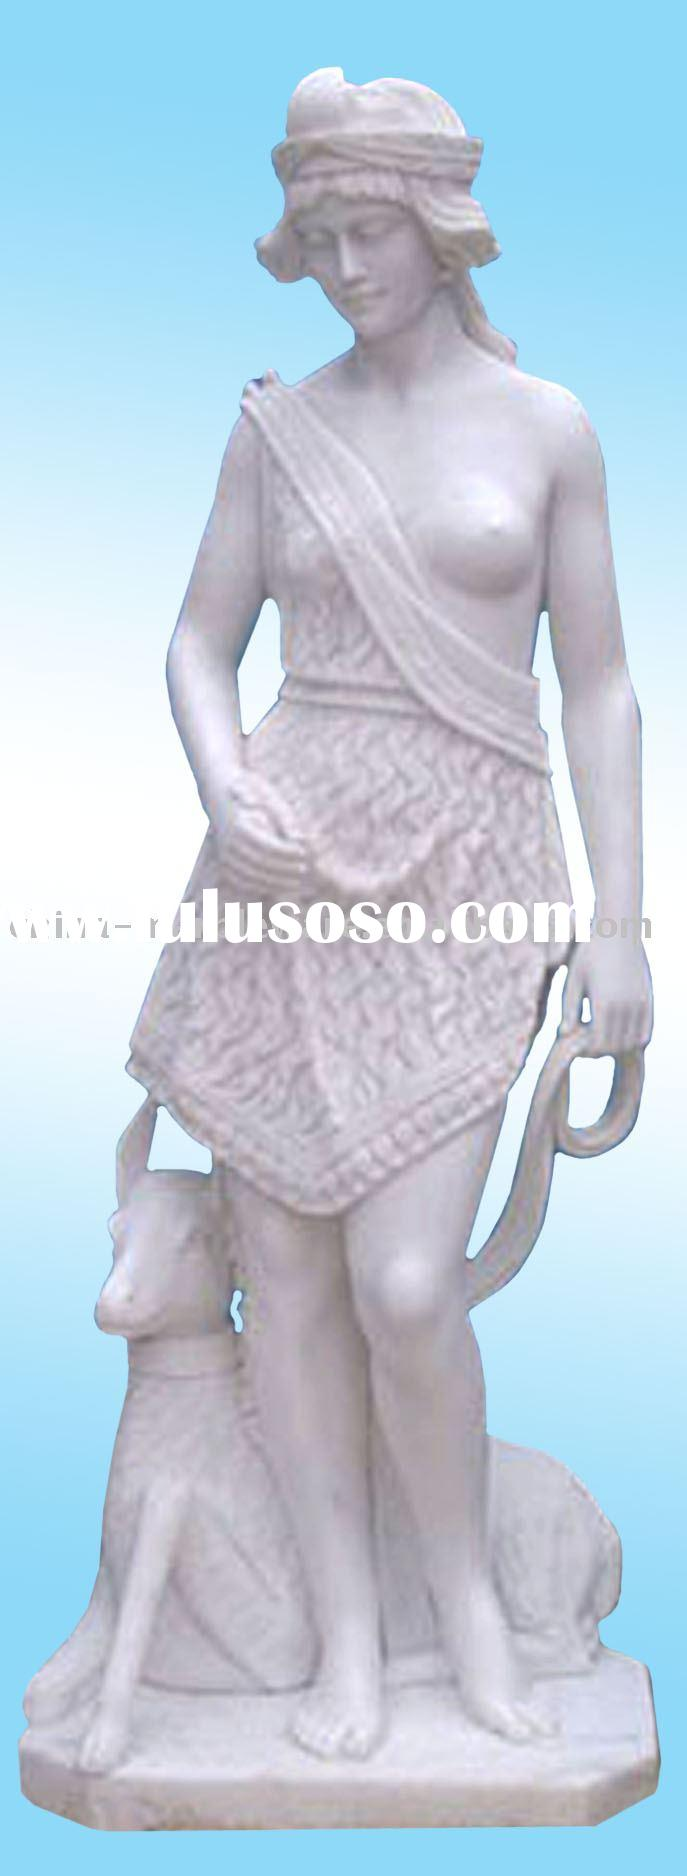 white marble statue of a girl guiding a sheep(H 160cm)